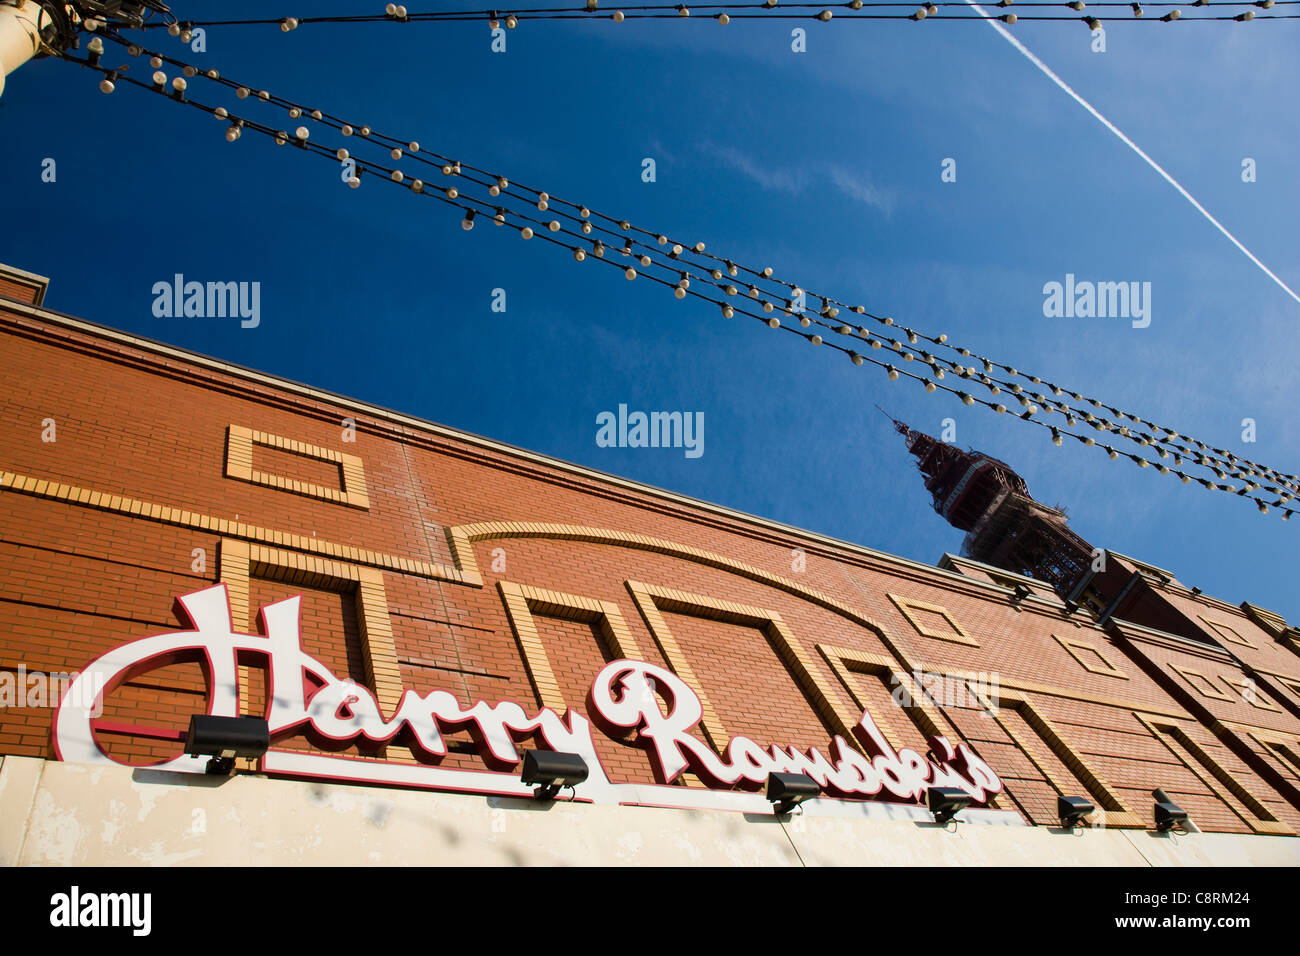 Harry Ramsden's fish and chip restaurant and the Blackpool Tower in Blackpool, UK Stock Photo